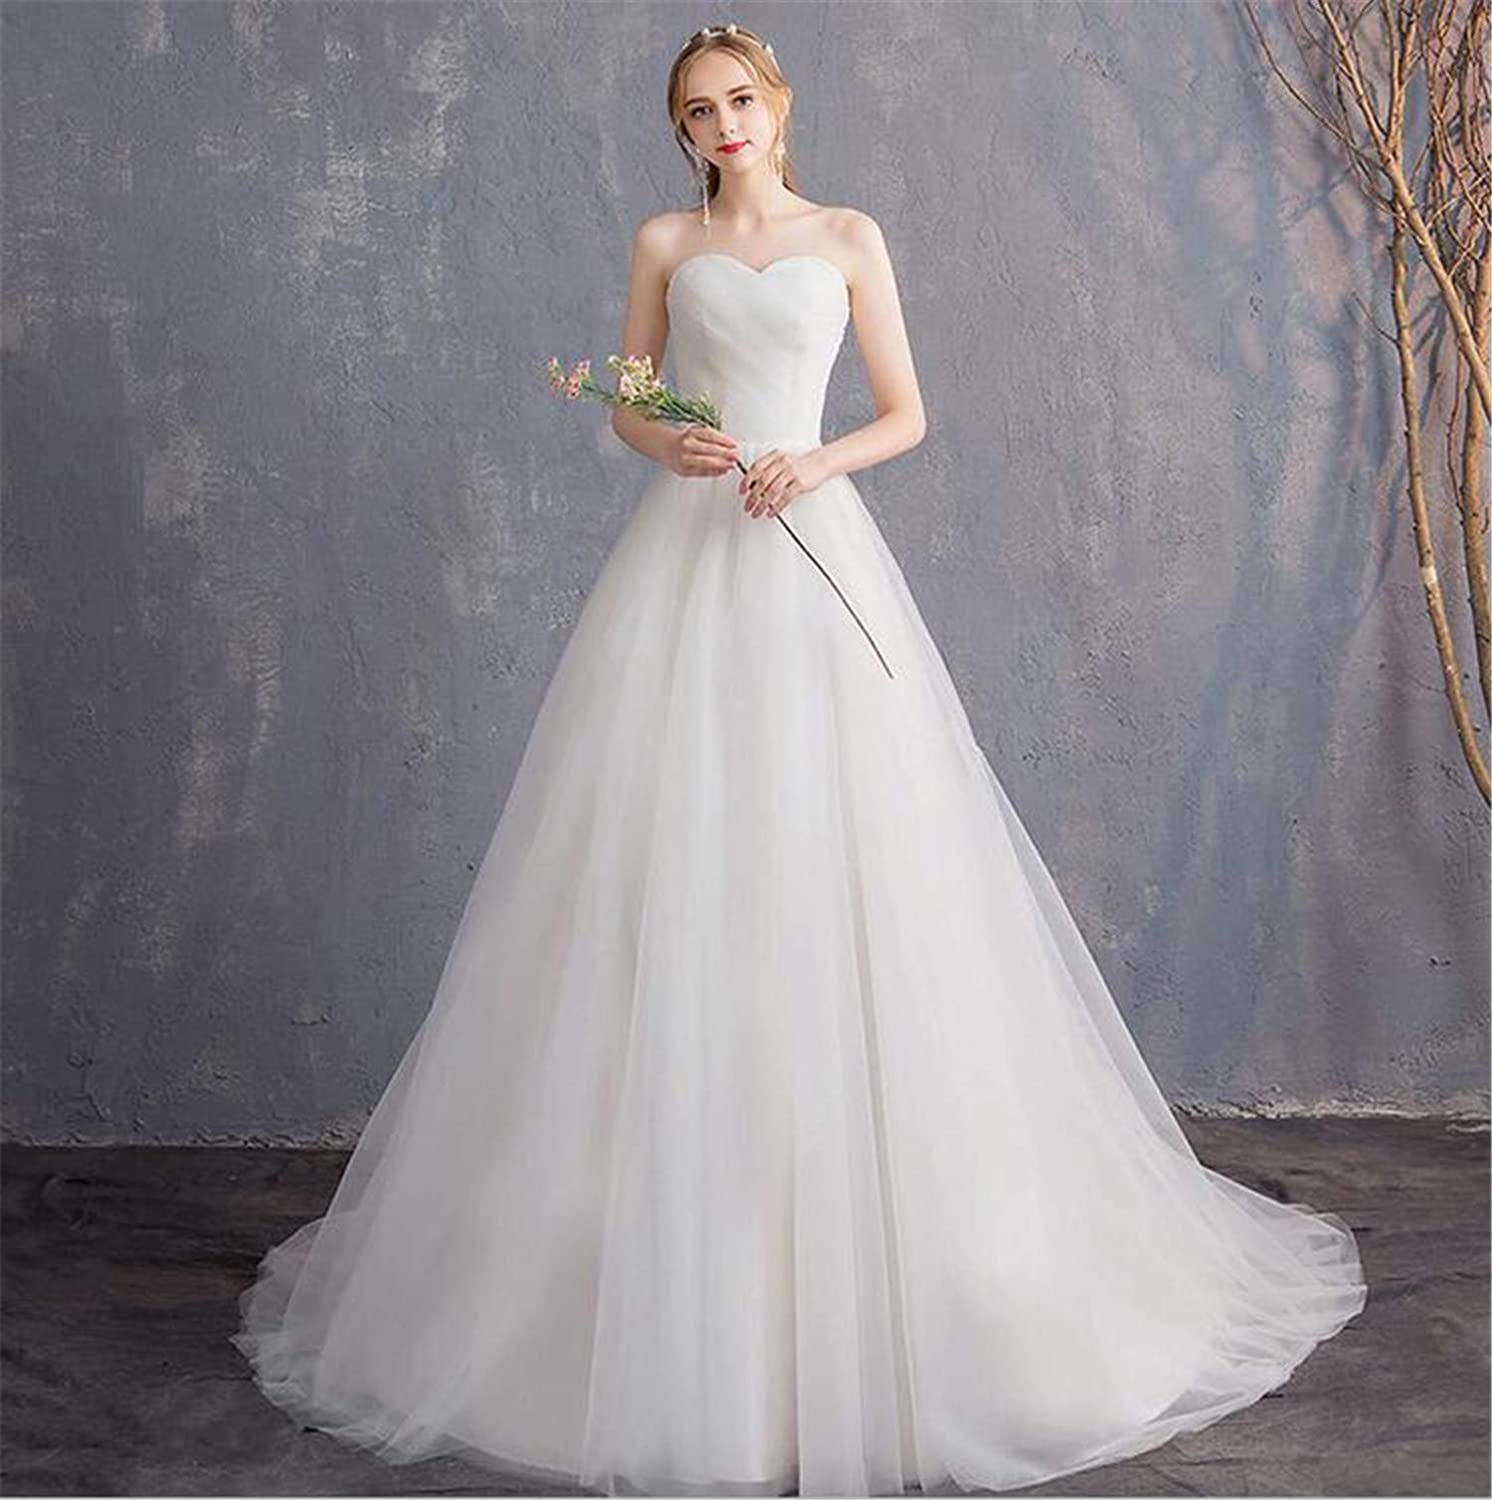 Wedding Dress, Bride Tube Top Bridesmaid Open Back Mesh Line A Sexy Slim Fit Luxurious Europe and America Elegant Evening